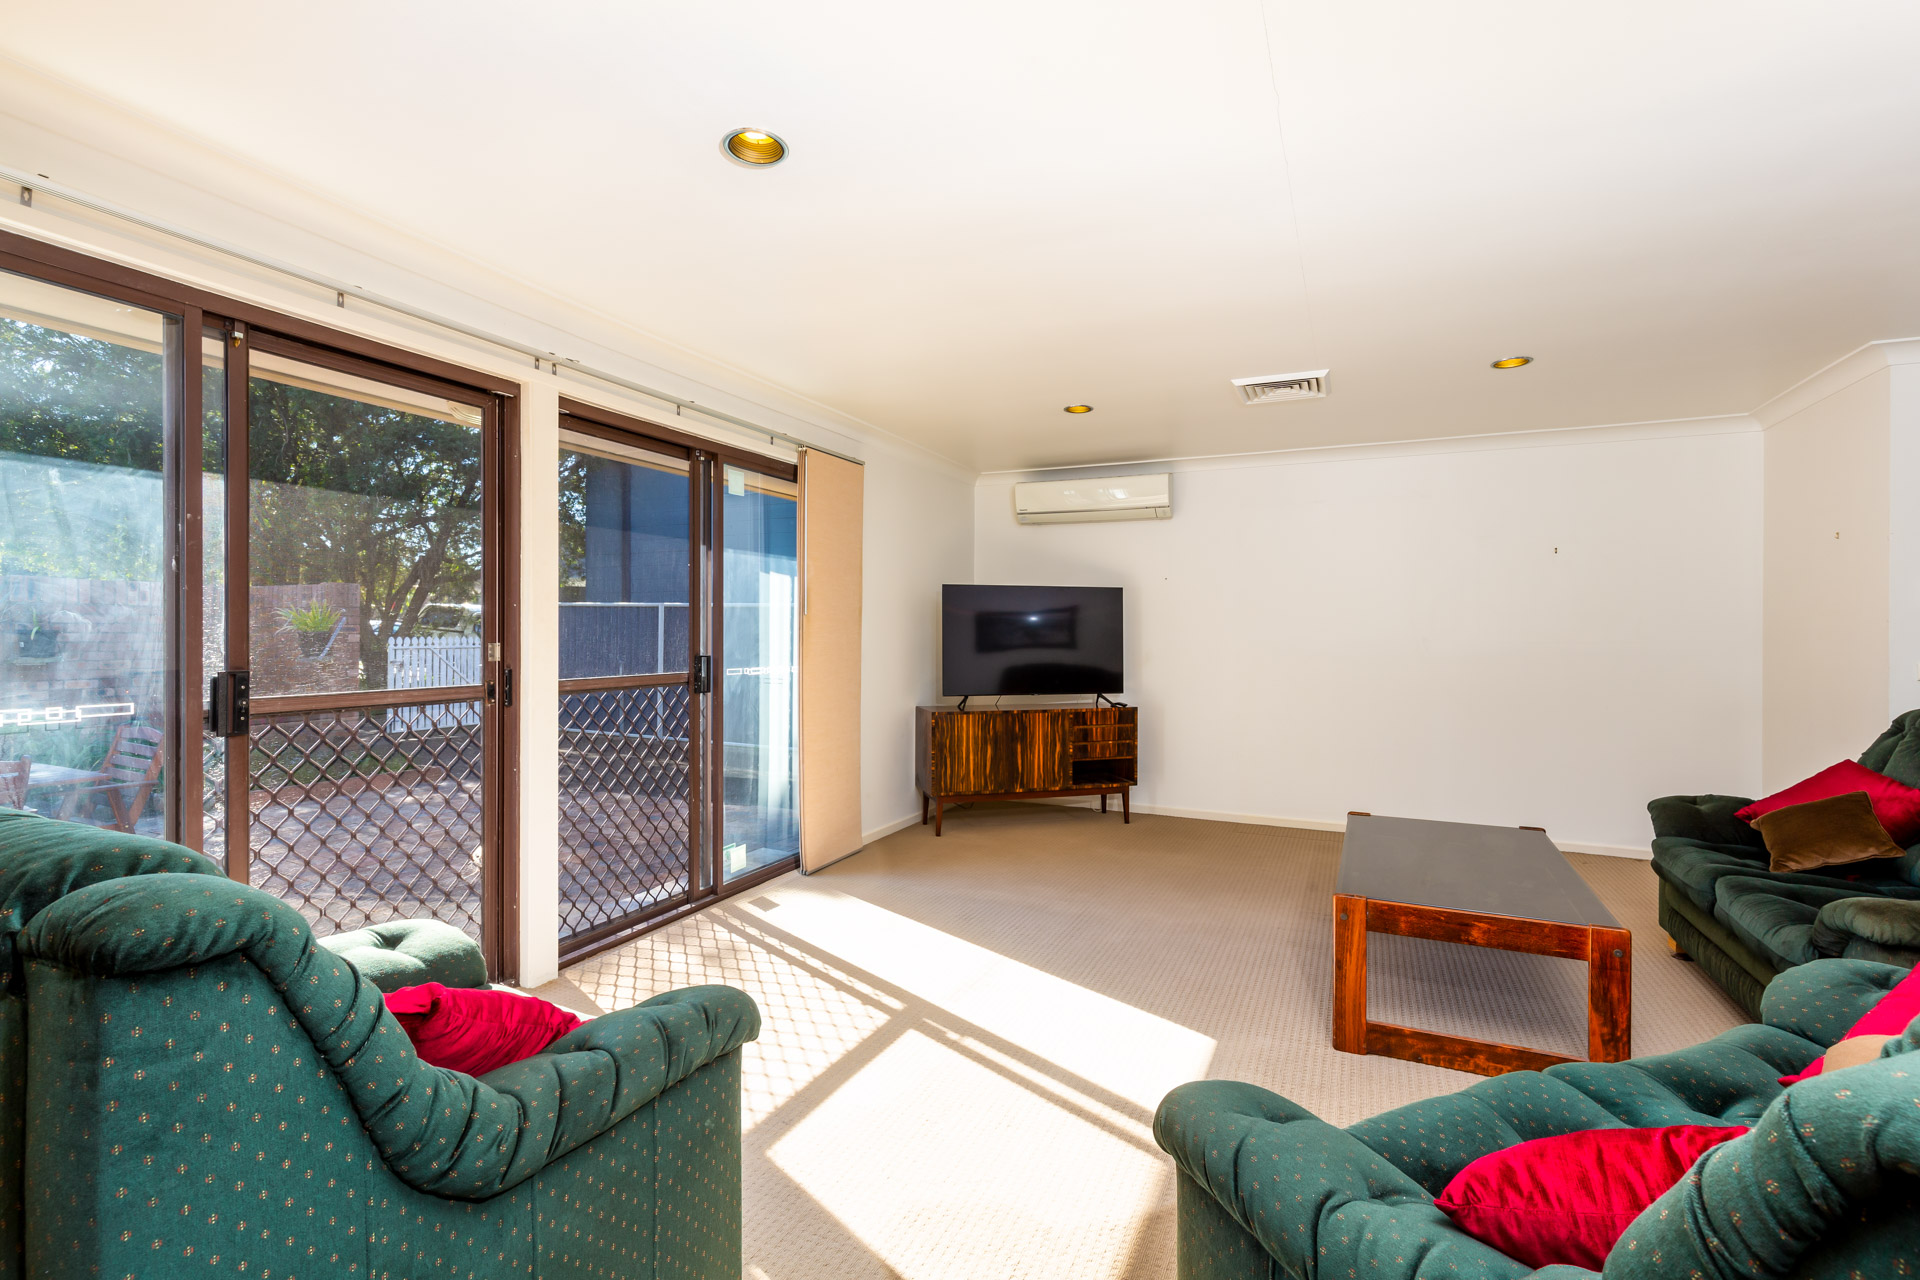 70 Medcalf St   Warners Bay (17 of 18)